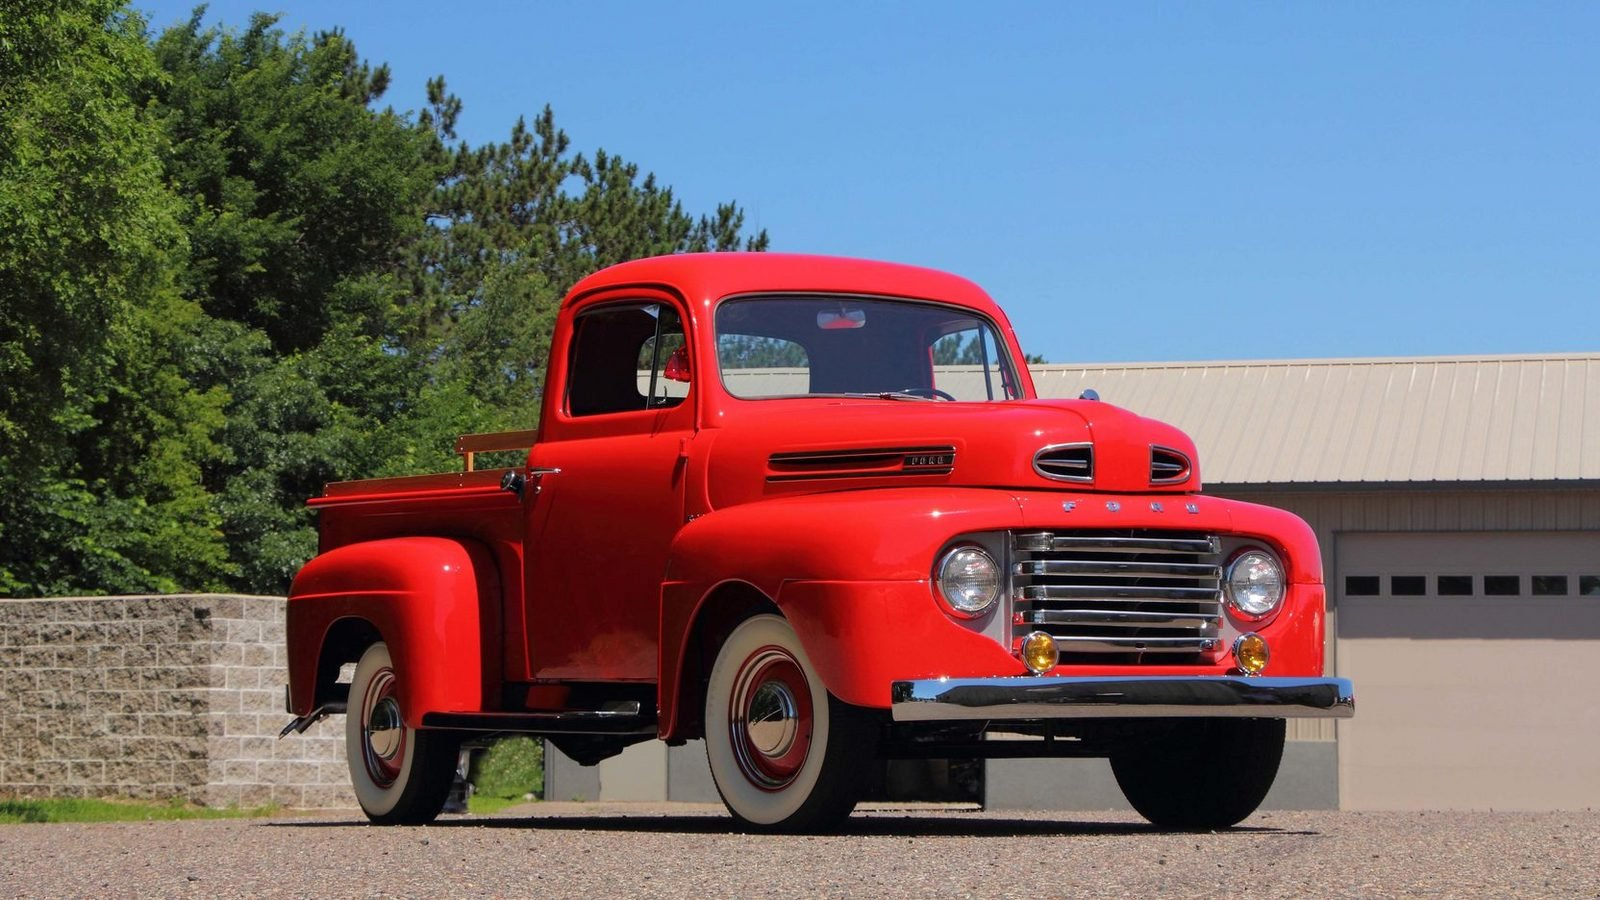 1950 ford f47 pickup picture 683332 truck review top. Black Bedroom Furniture Sets. Home Design Ideas